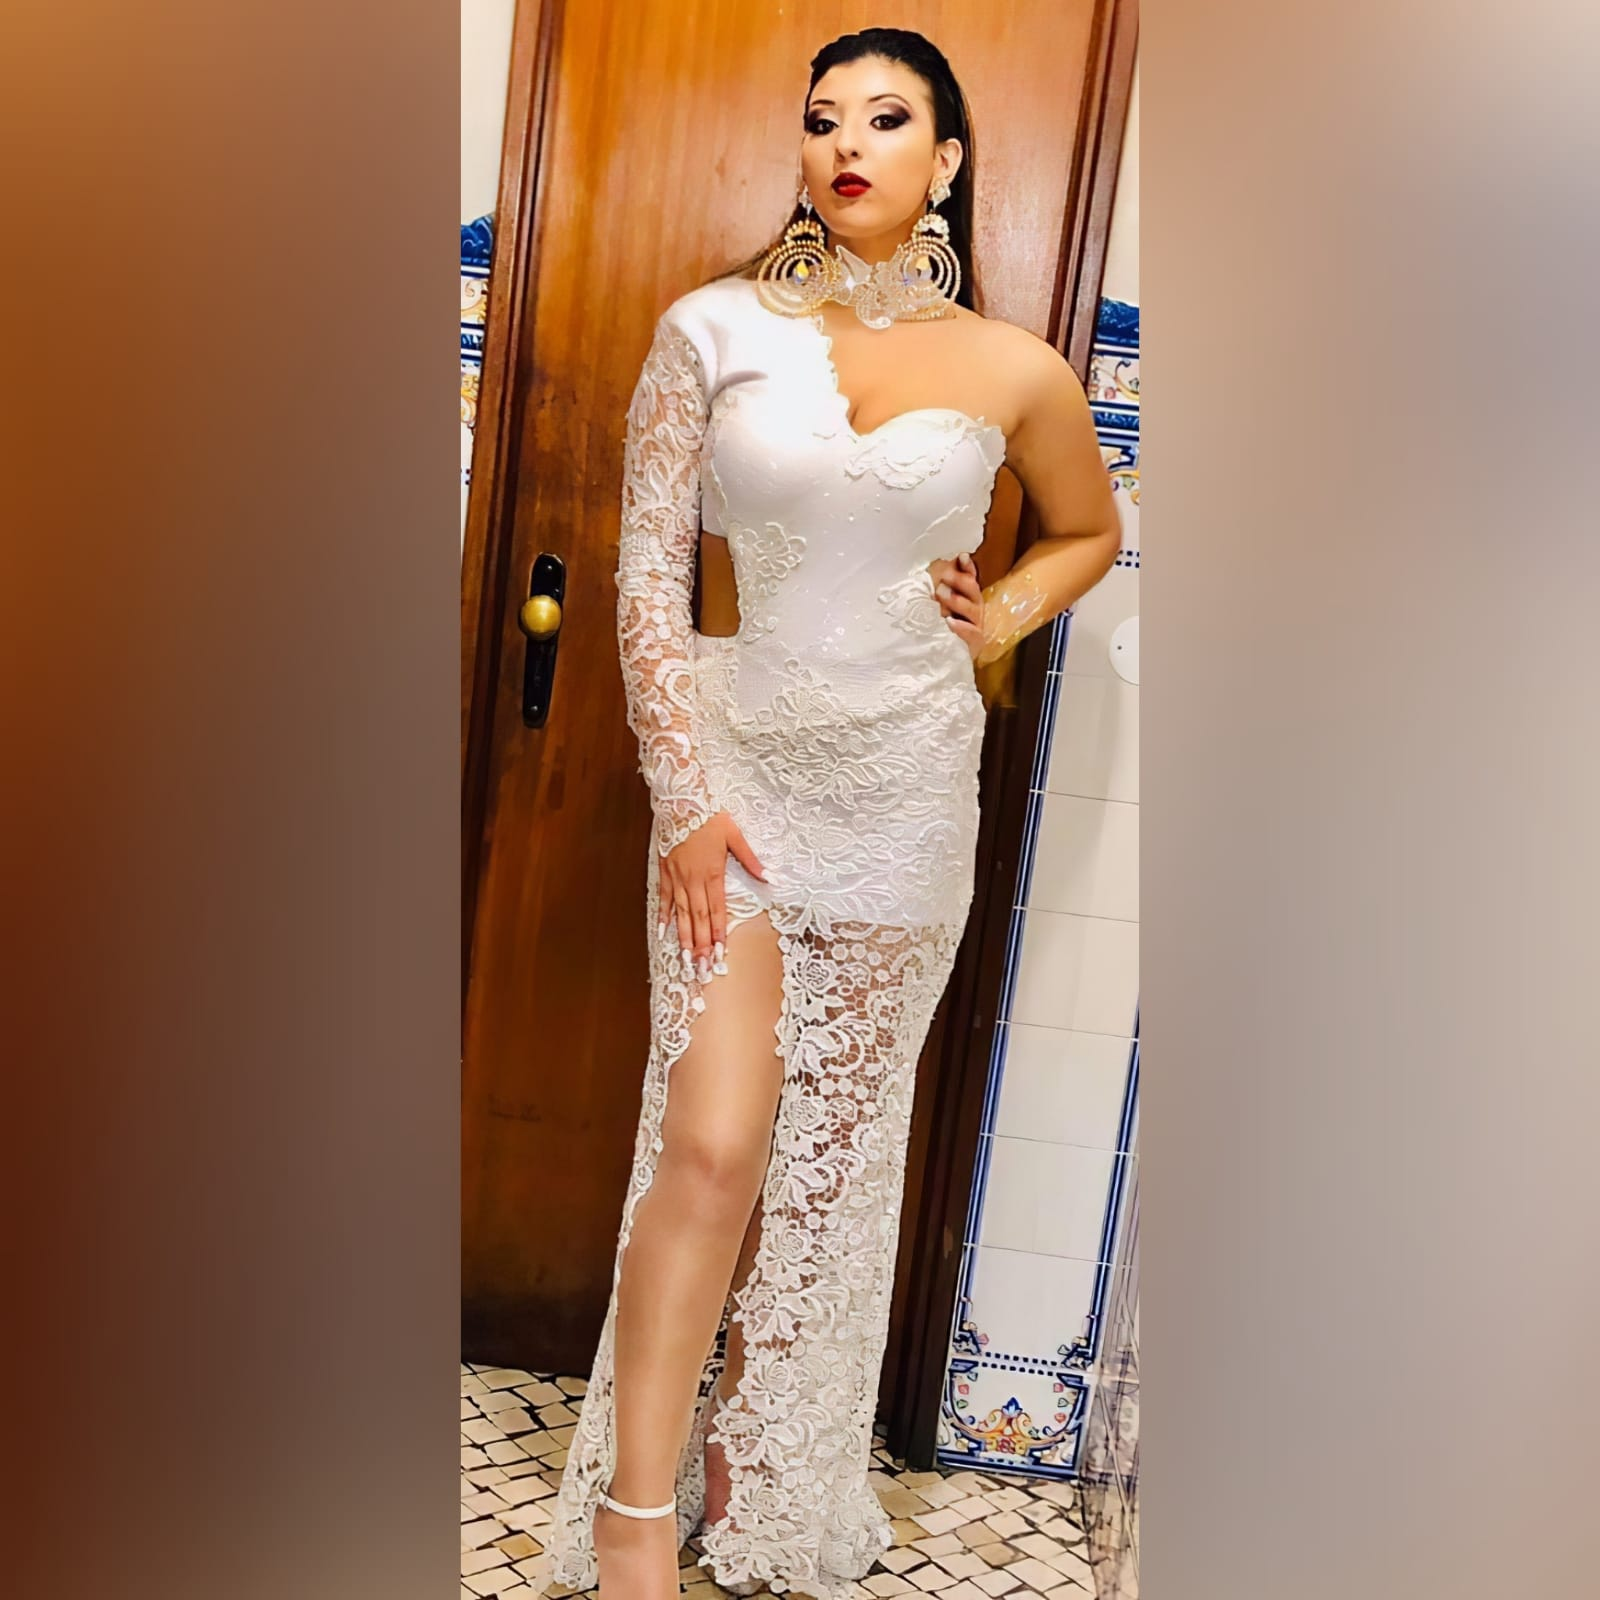 White lace long, sexy evening dress - Marisela Veludo 2020 (7)